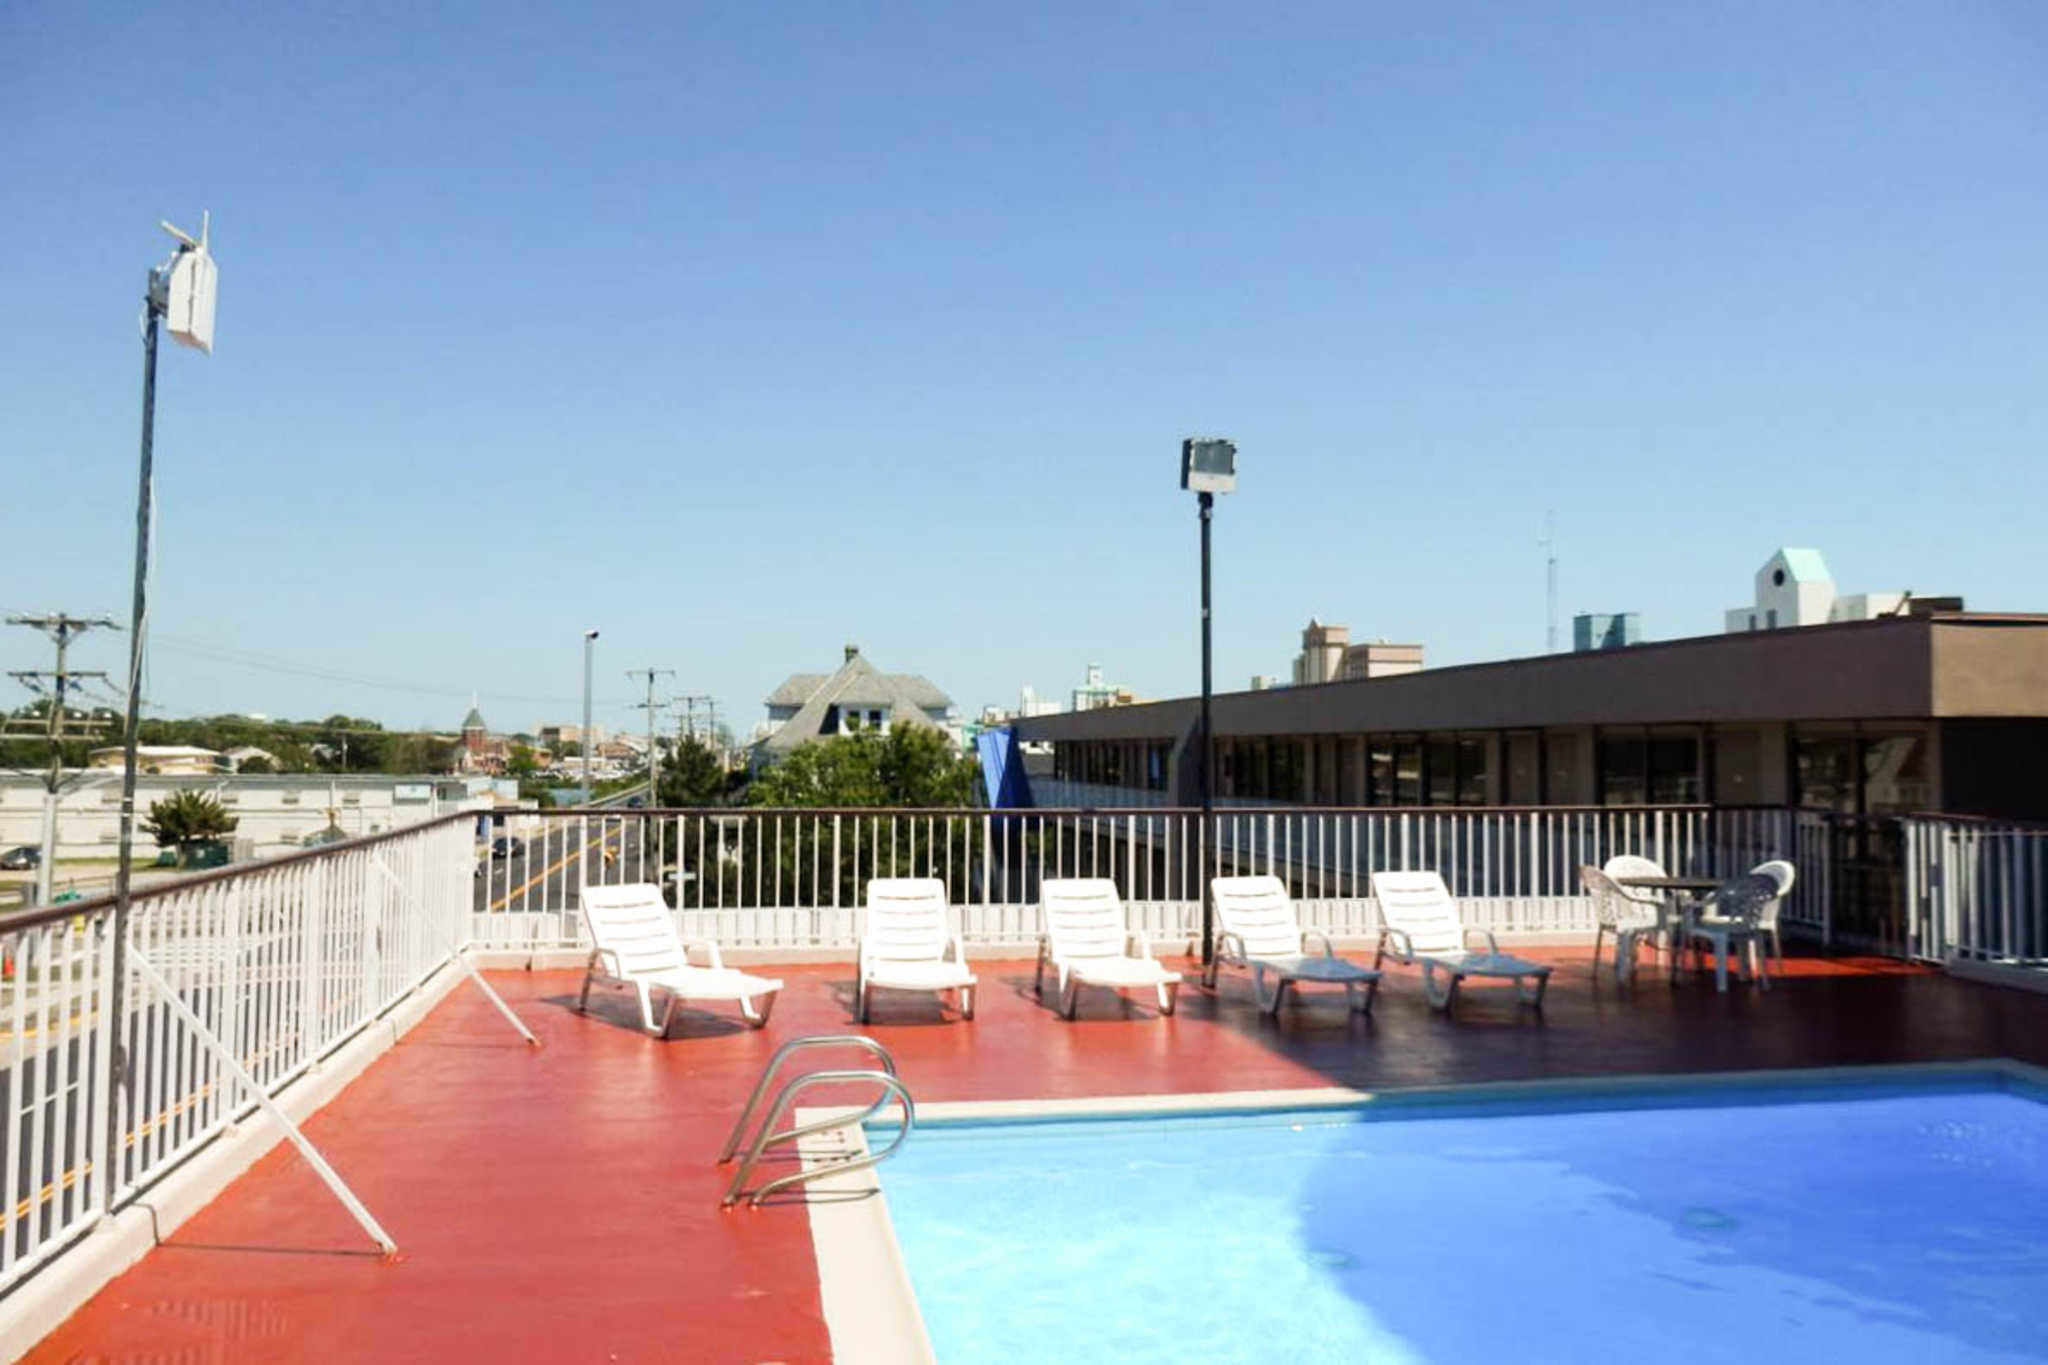 Rodeway inn by the beach coupons virginia beach va near me for Affordable pools virginia beach